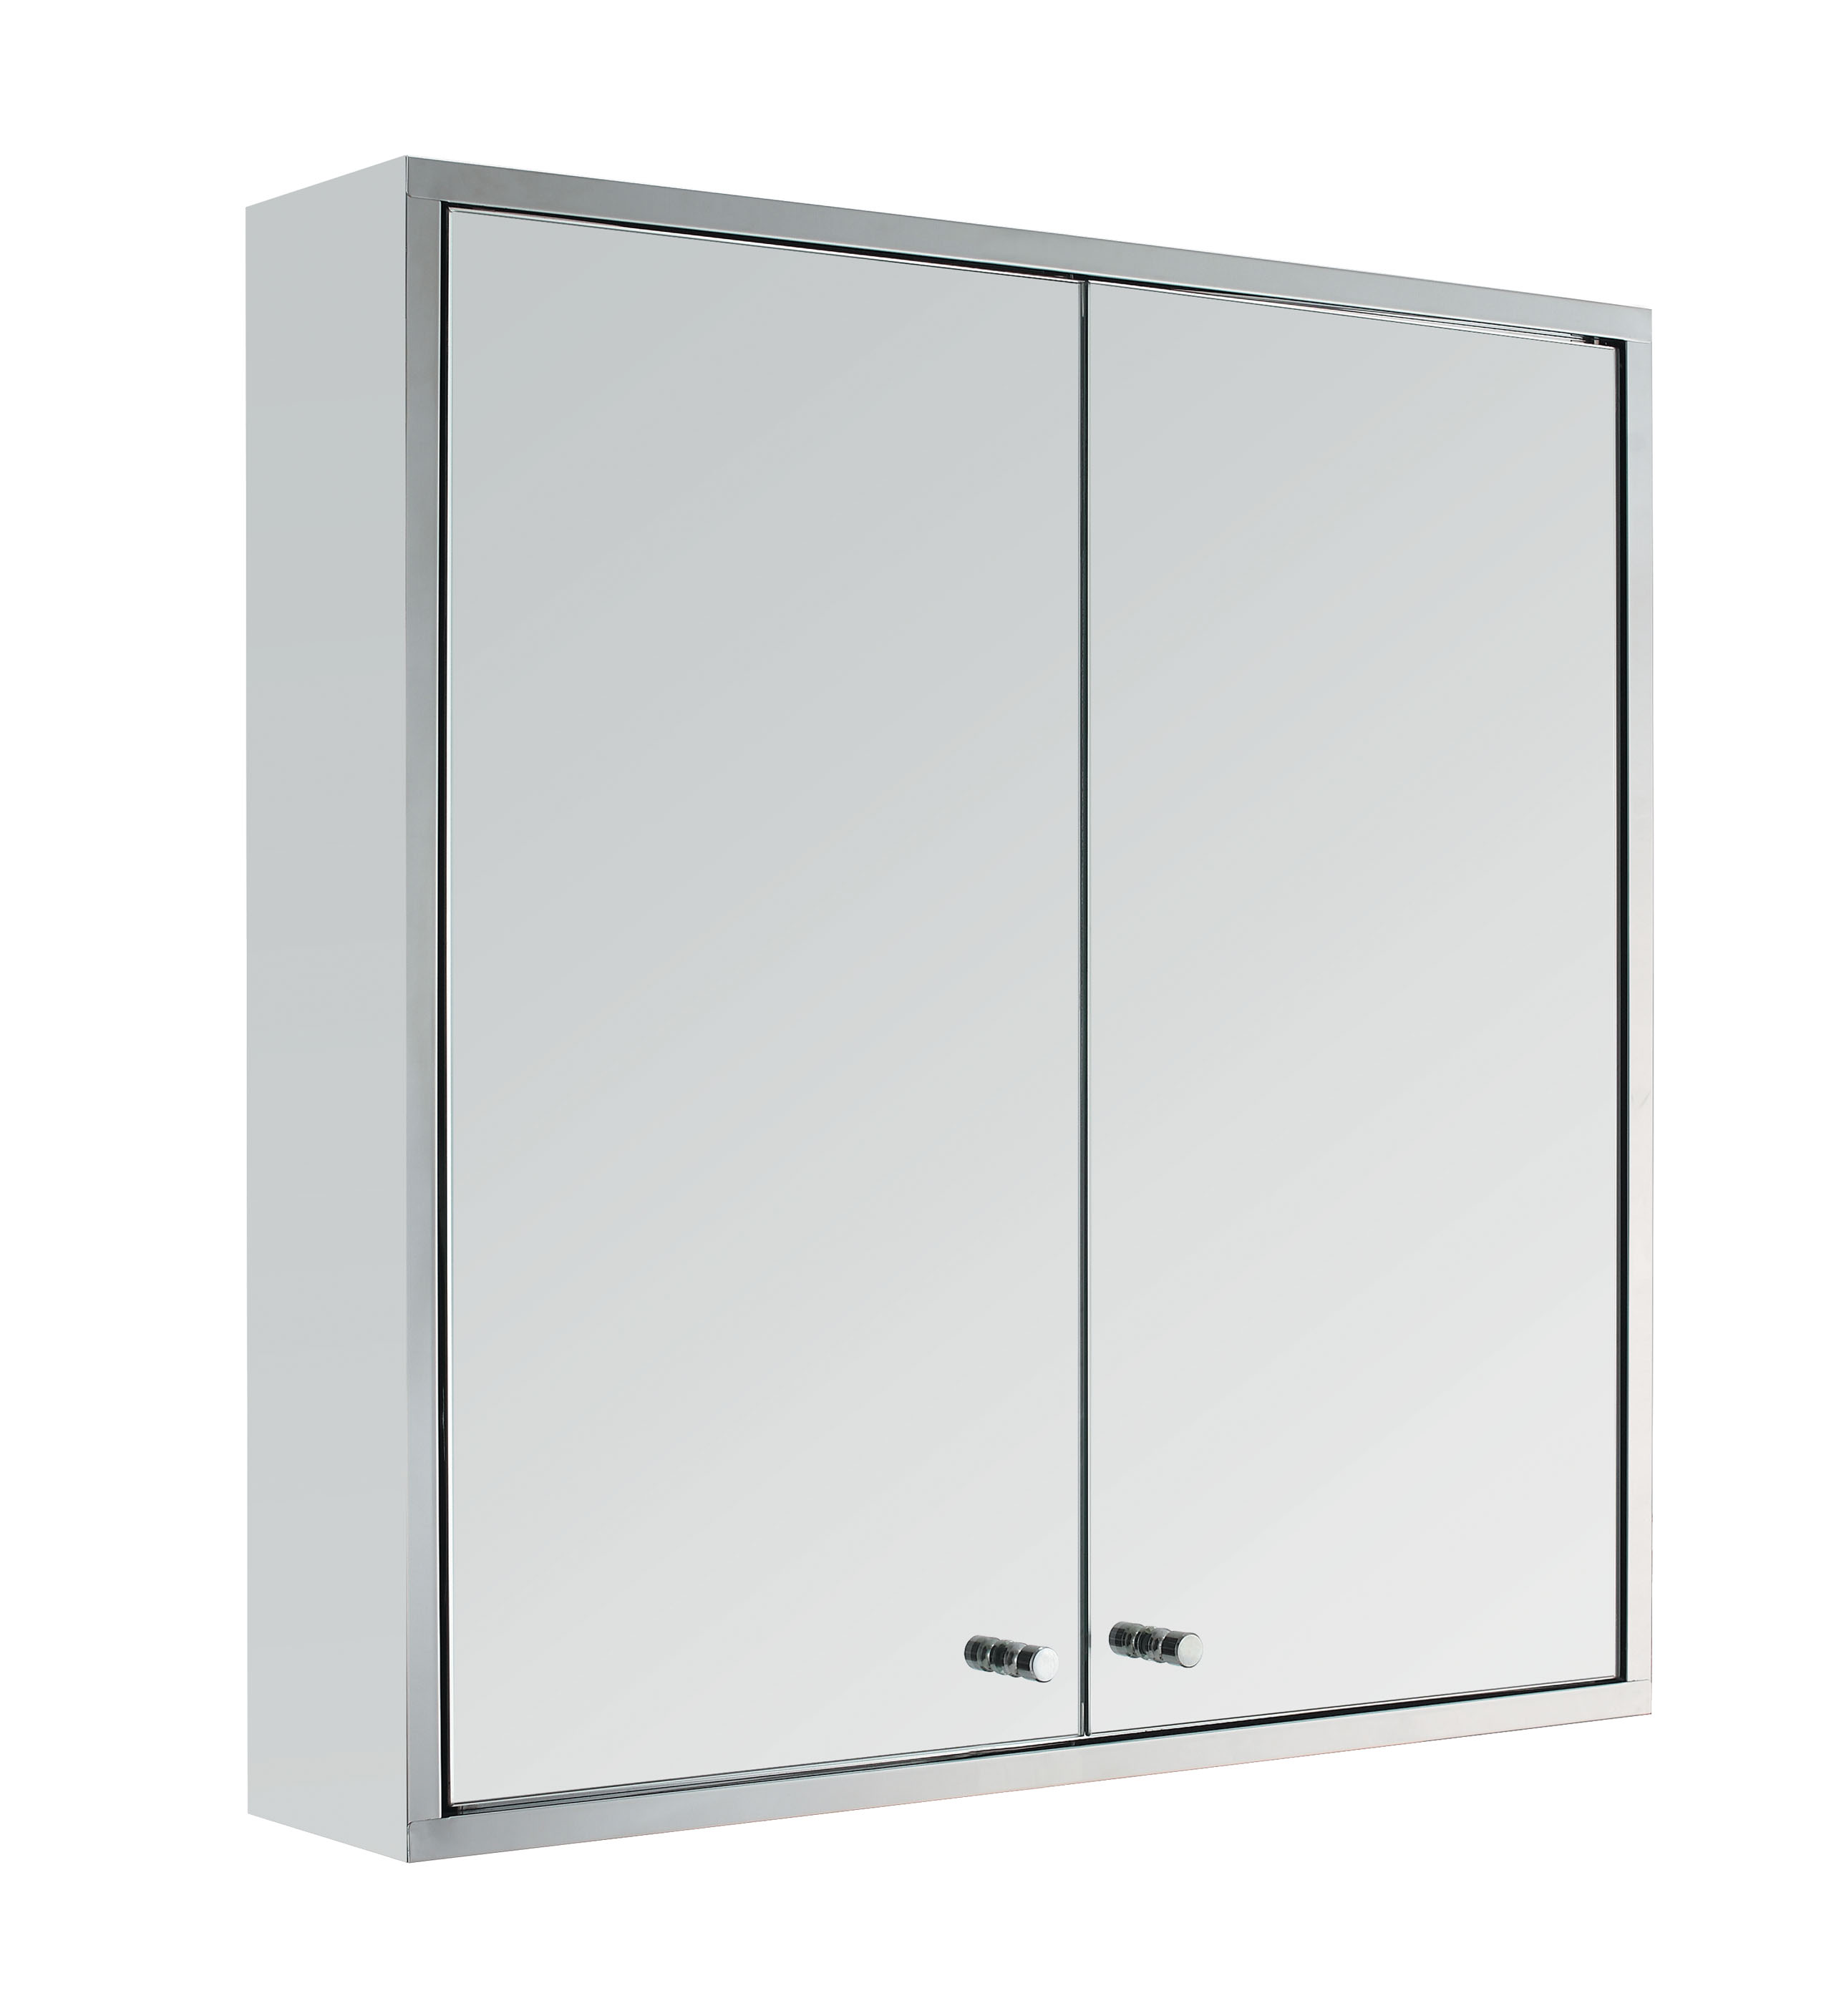 Bathroom Cabinets Mirror bathroom cabinets uk - bathroom cabinets bathroom furniture wickes